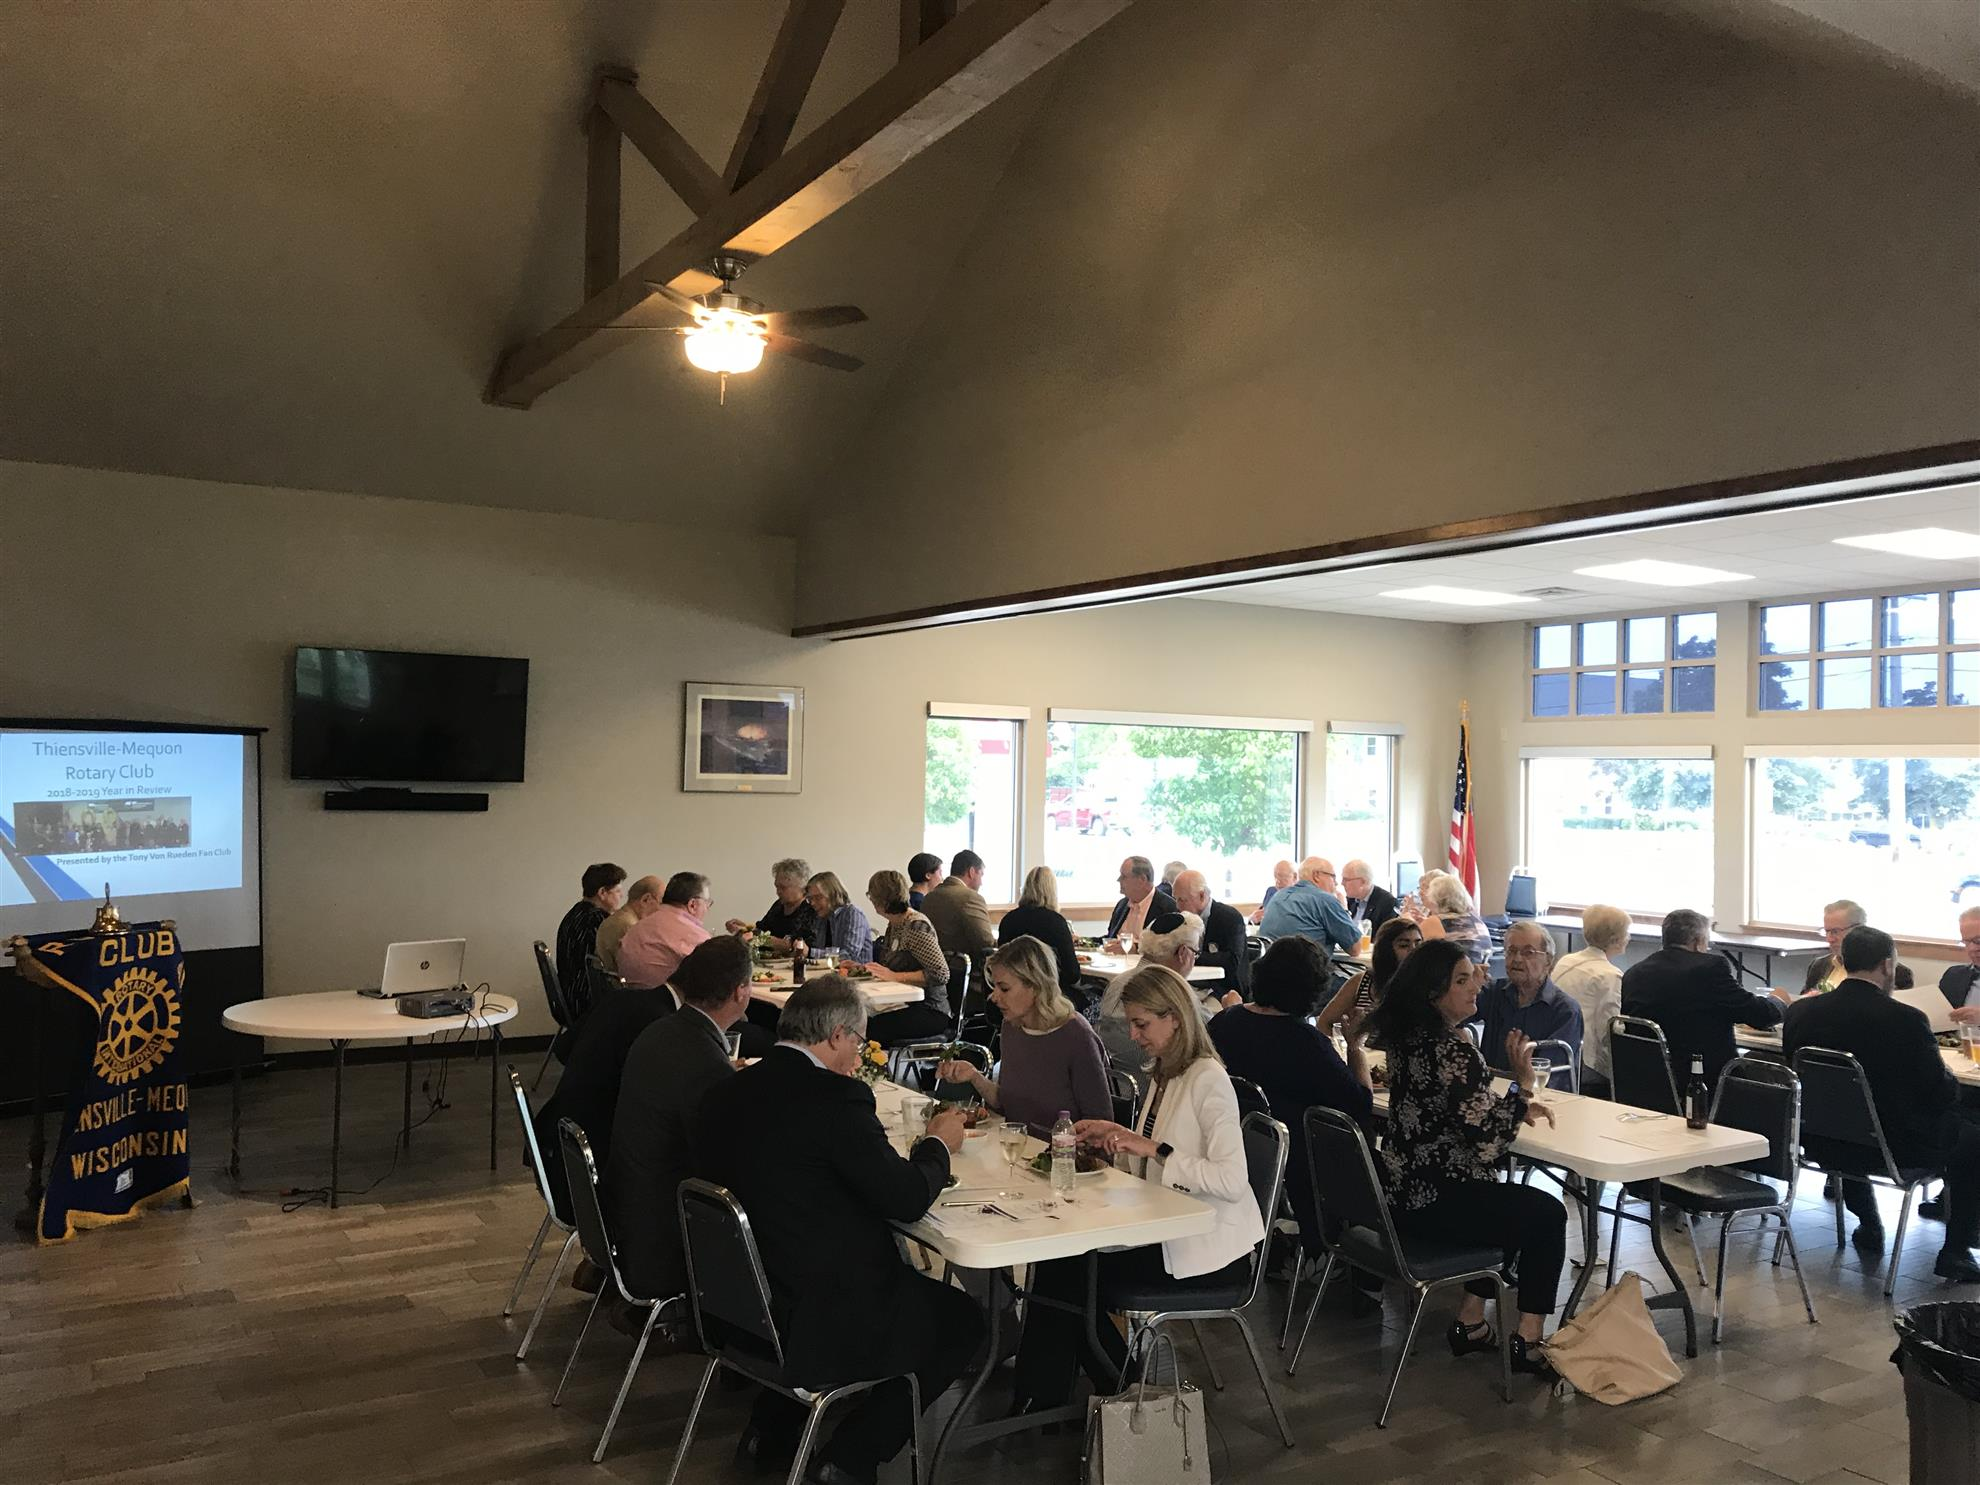 Stories | Rotary Club of Thiensville-Mequon